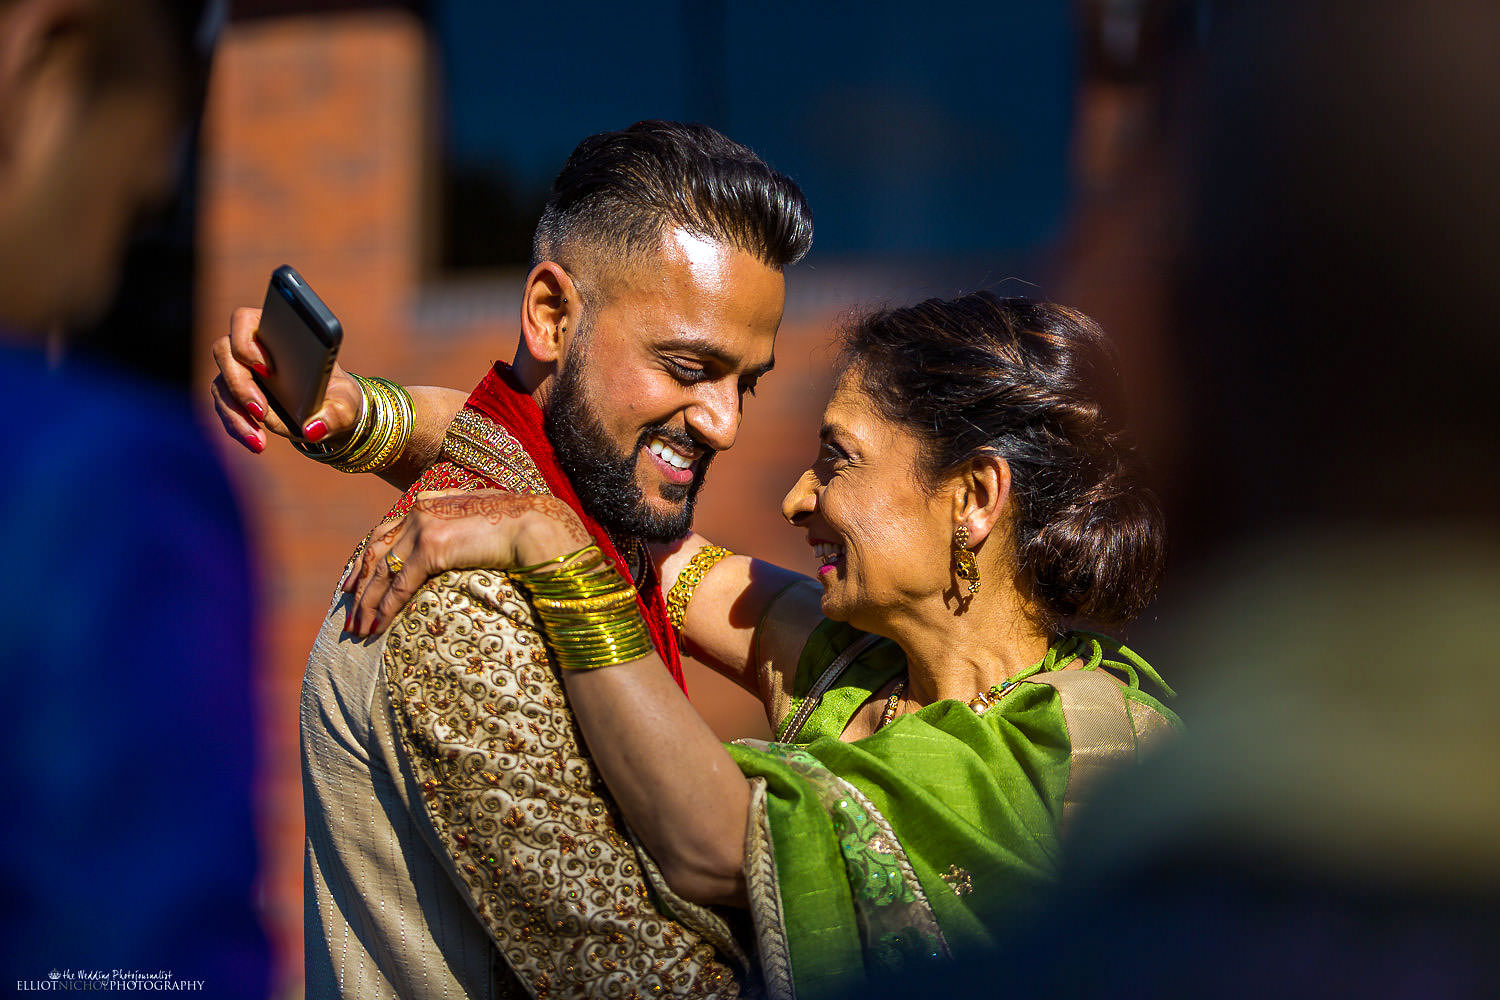 Indian Groom meets his mother-in-law to be. Photo by Newcastle Upon Tyne based wedding photojournalist Elliot Nichol.